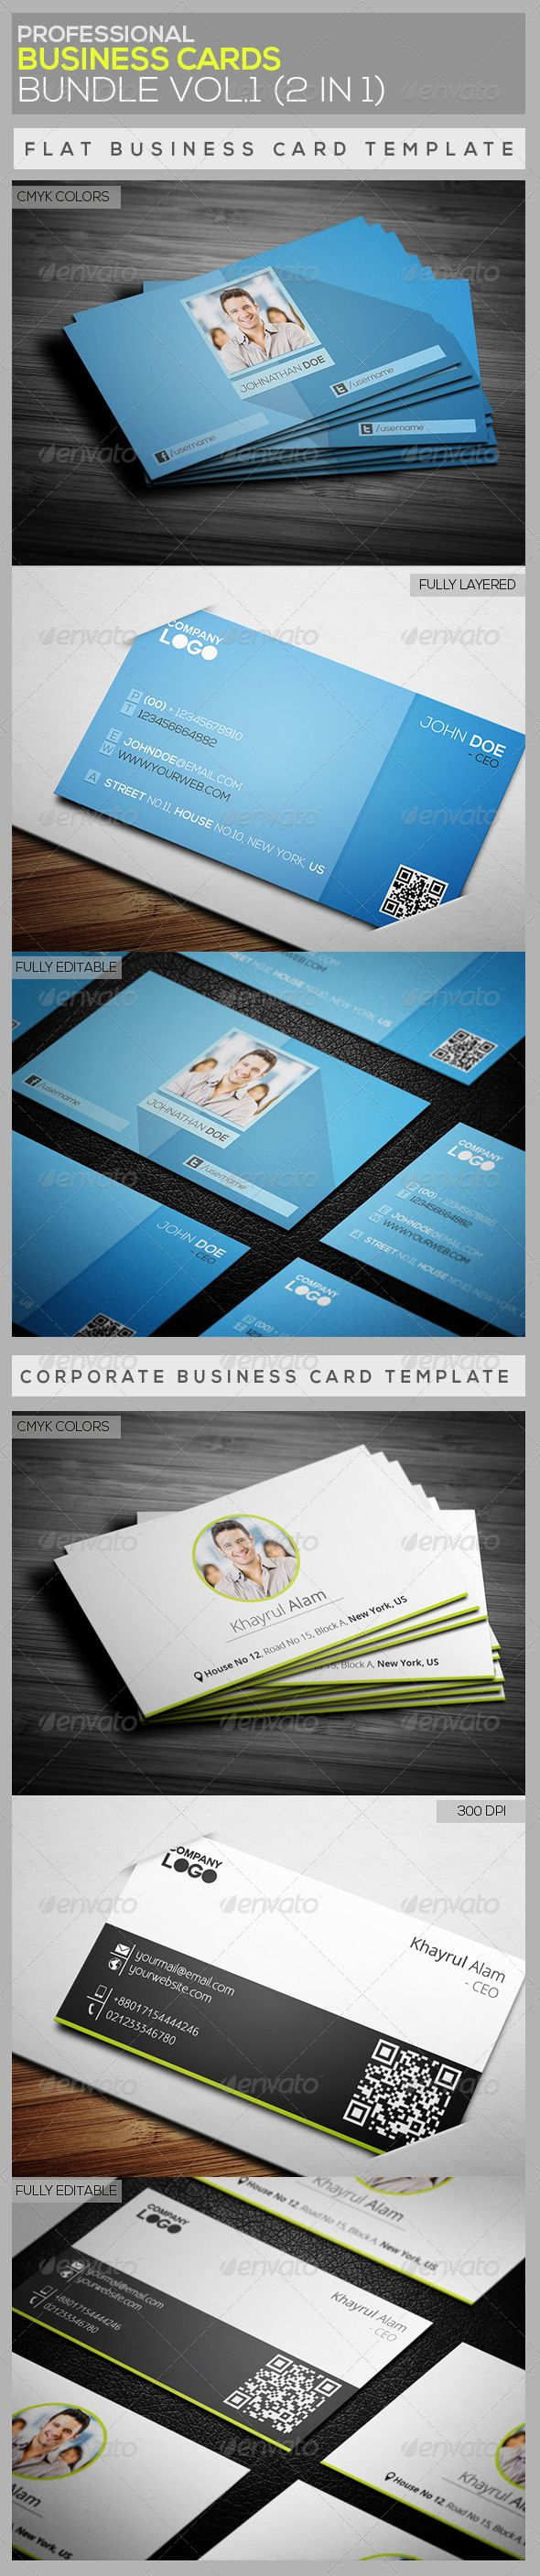 111 best print templates images on pinterest print templates 111 best print templates images on pinterest print templates flyer design and font logo reheart Gallery